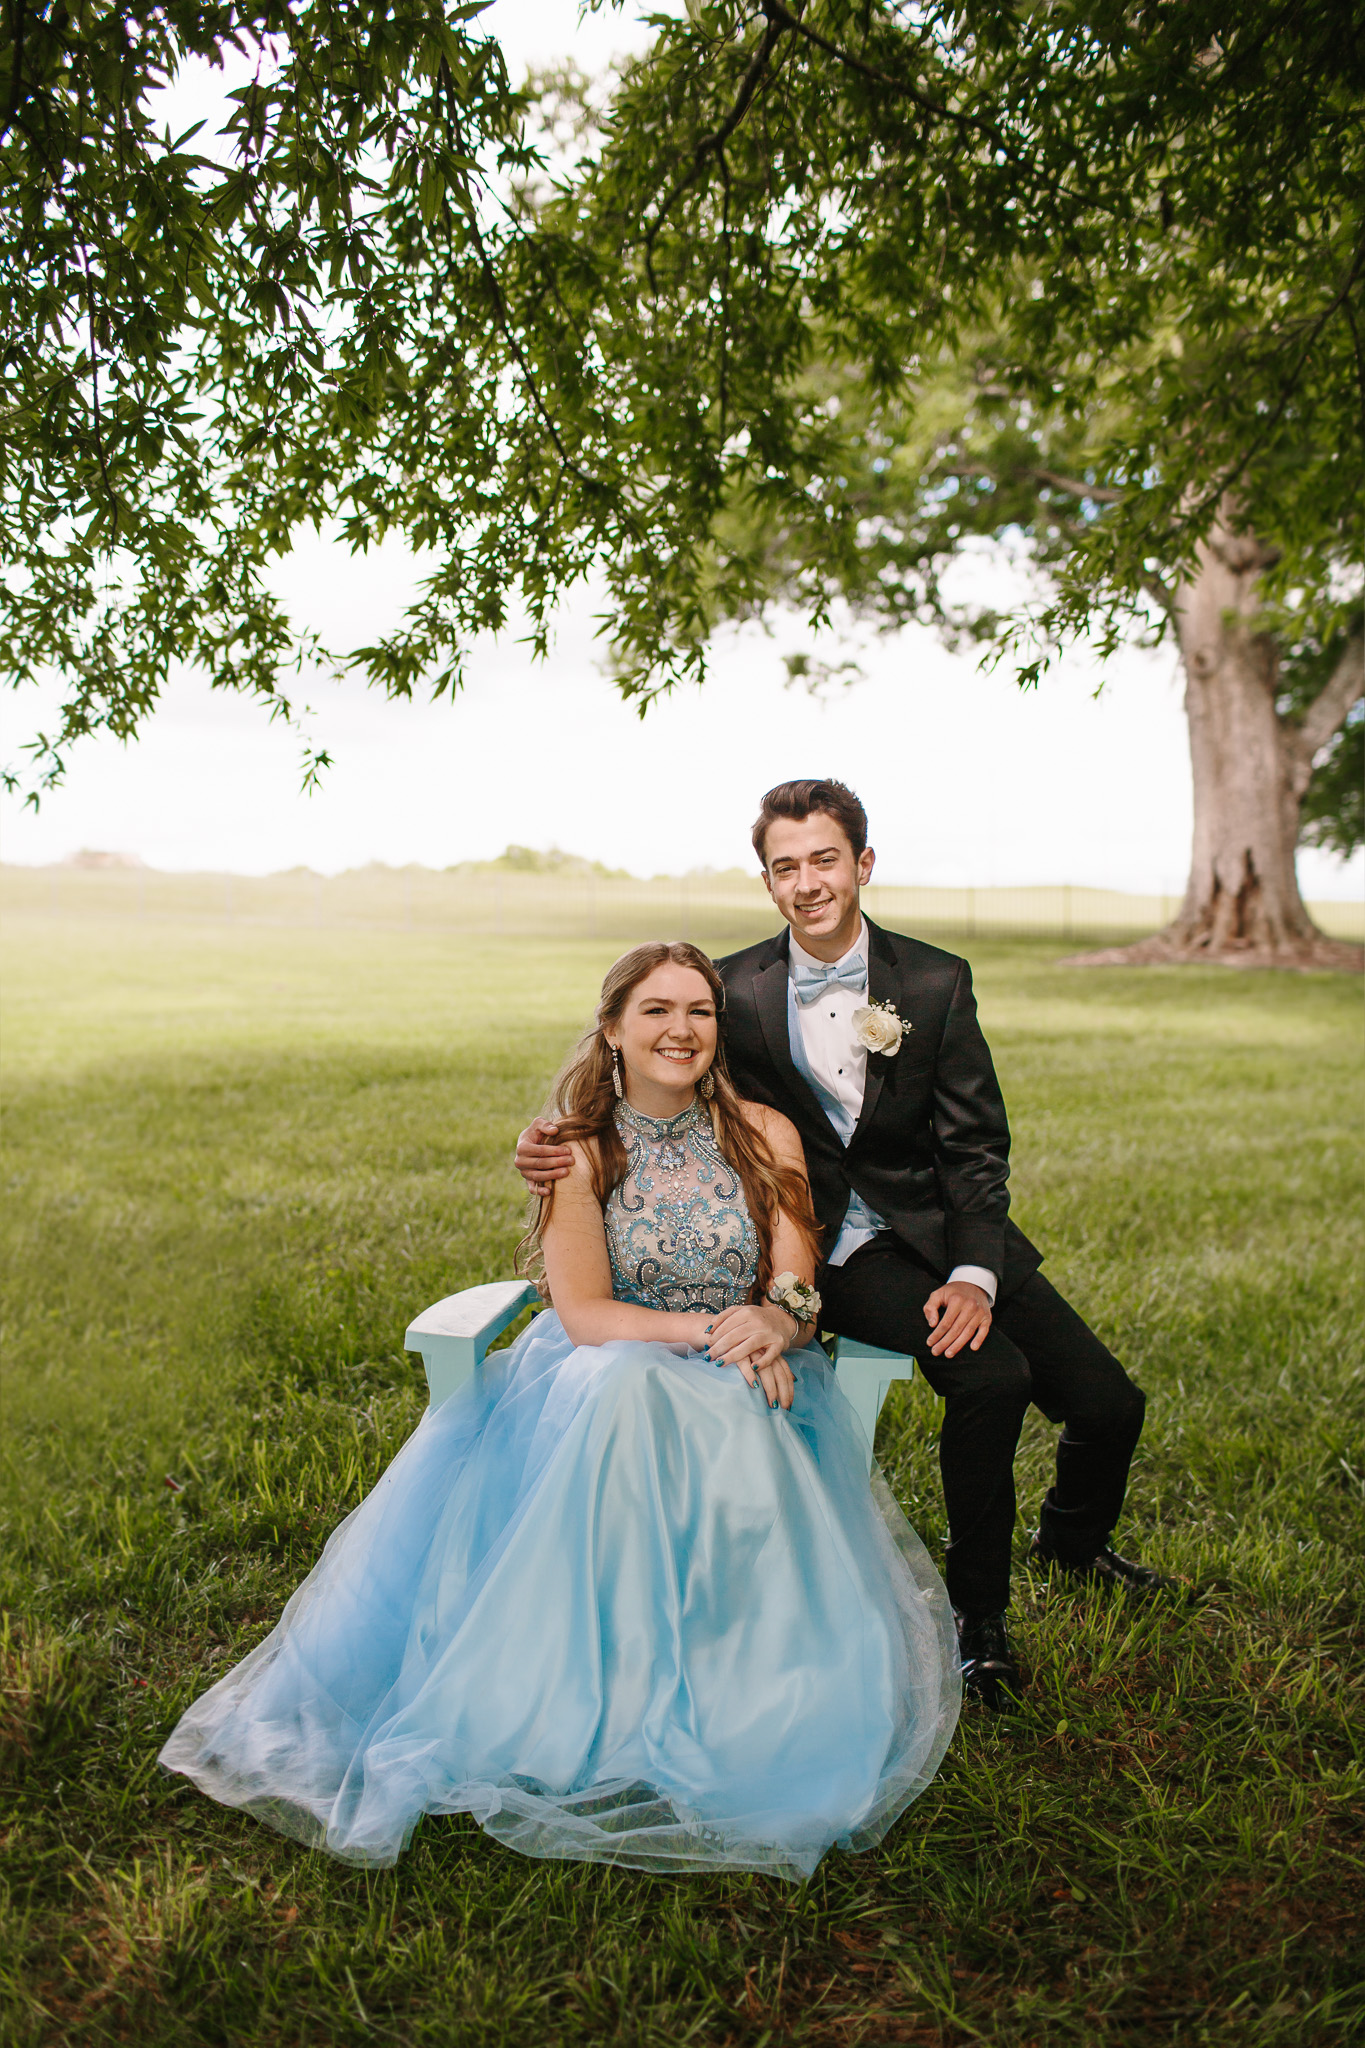 jennichandlerphotography_2017Prom_WEB-31.jpg